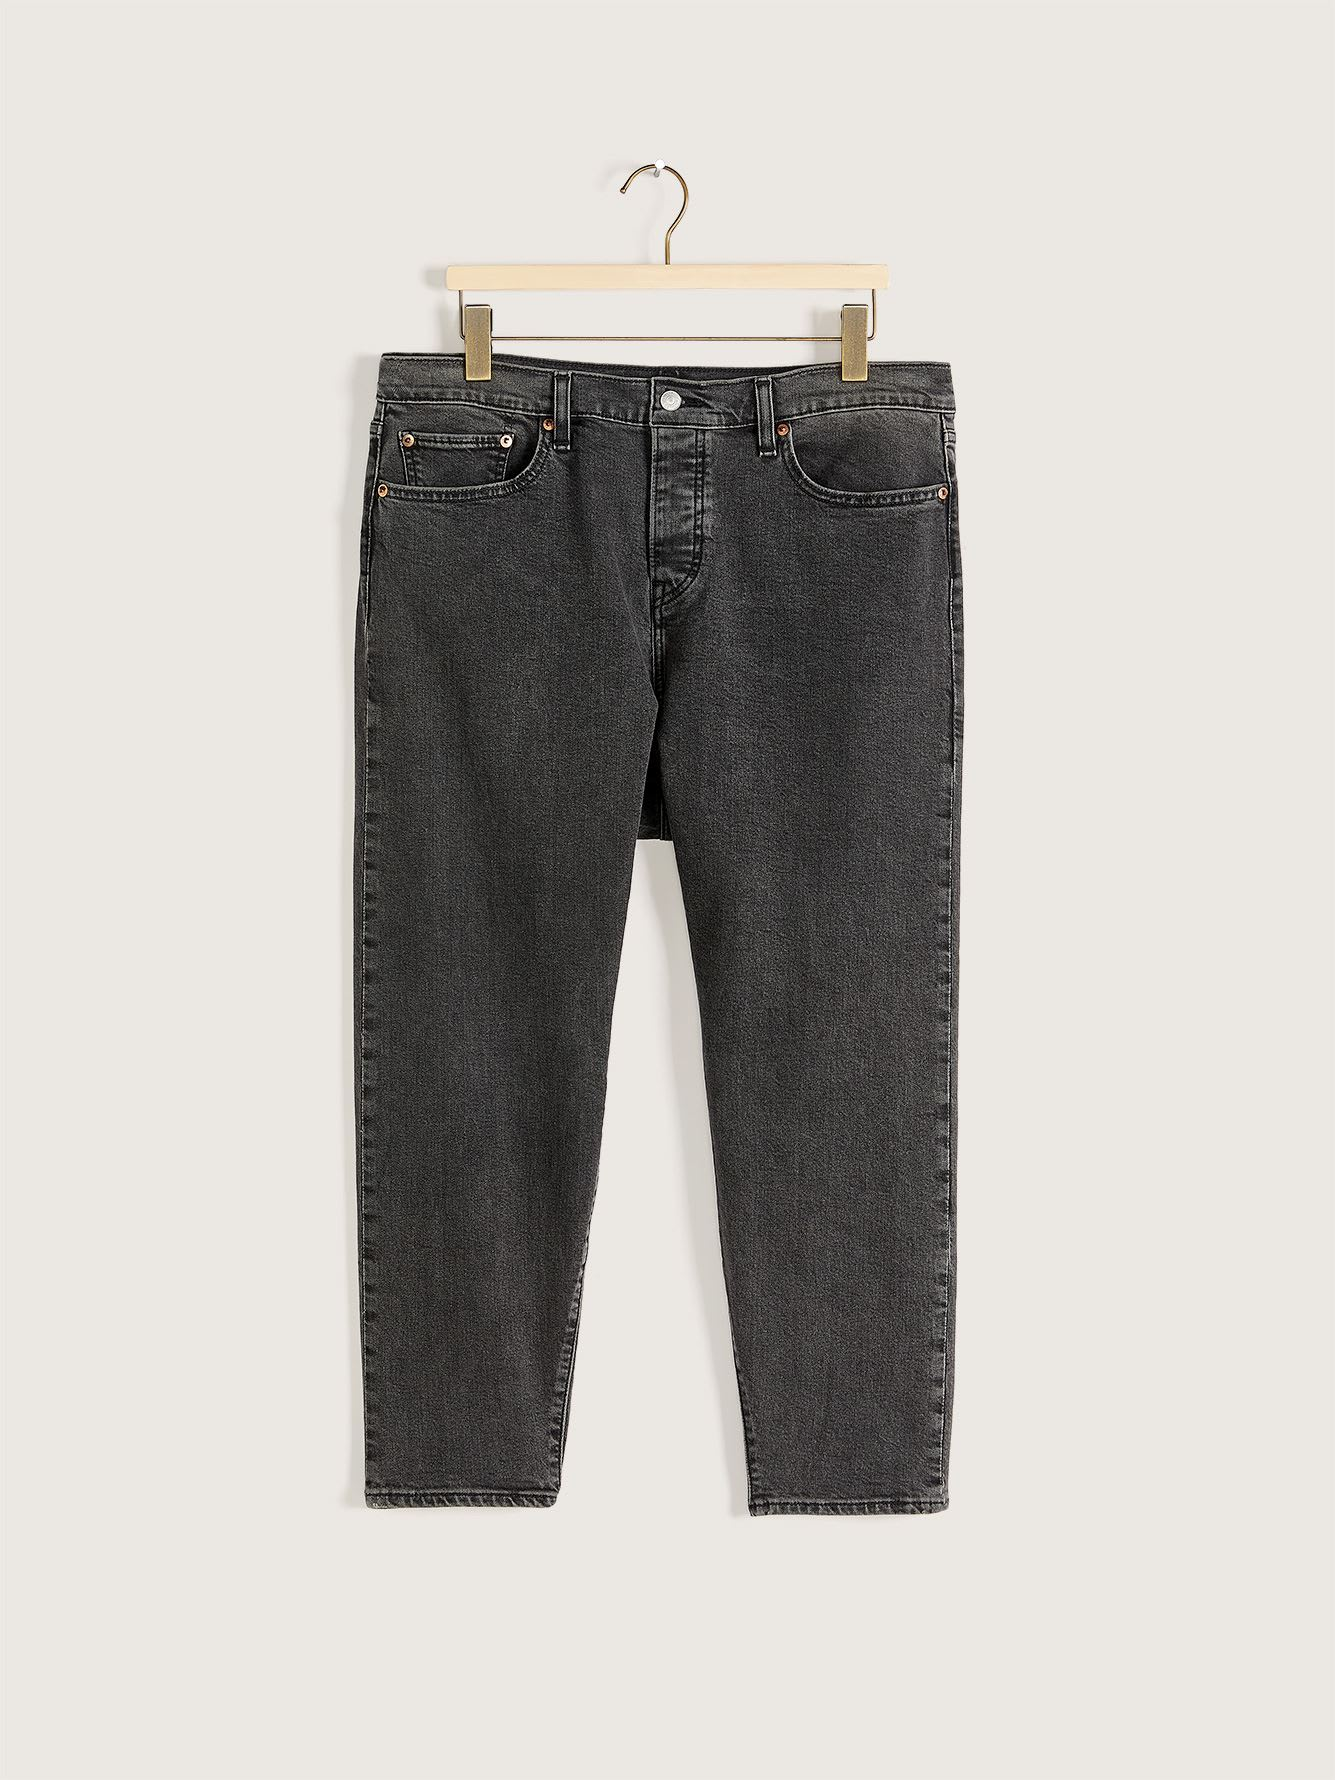 Stretchy High-Rise Wedgie Black Ankle Length Jean - Levi's Premium